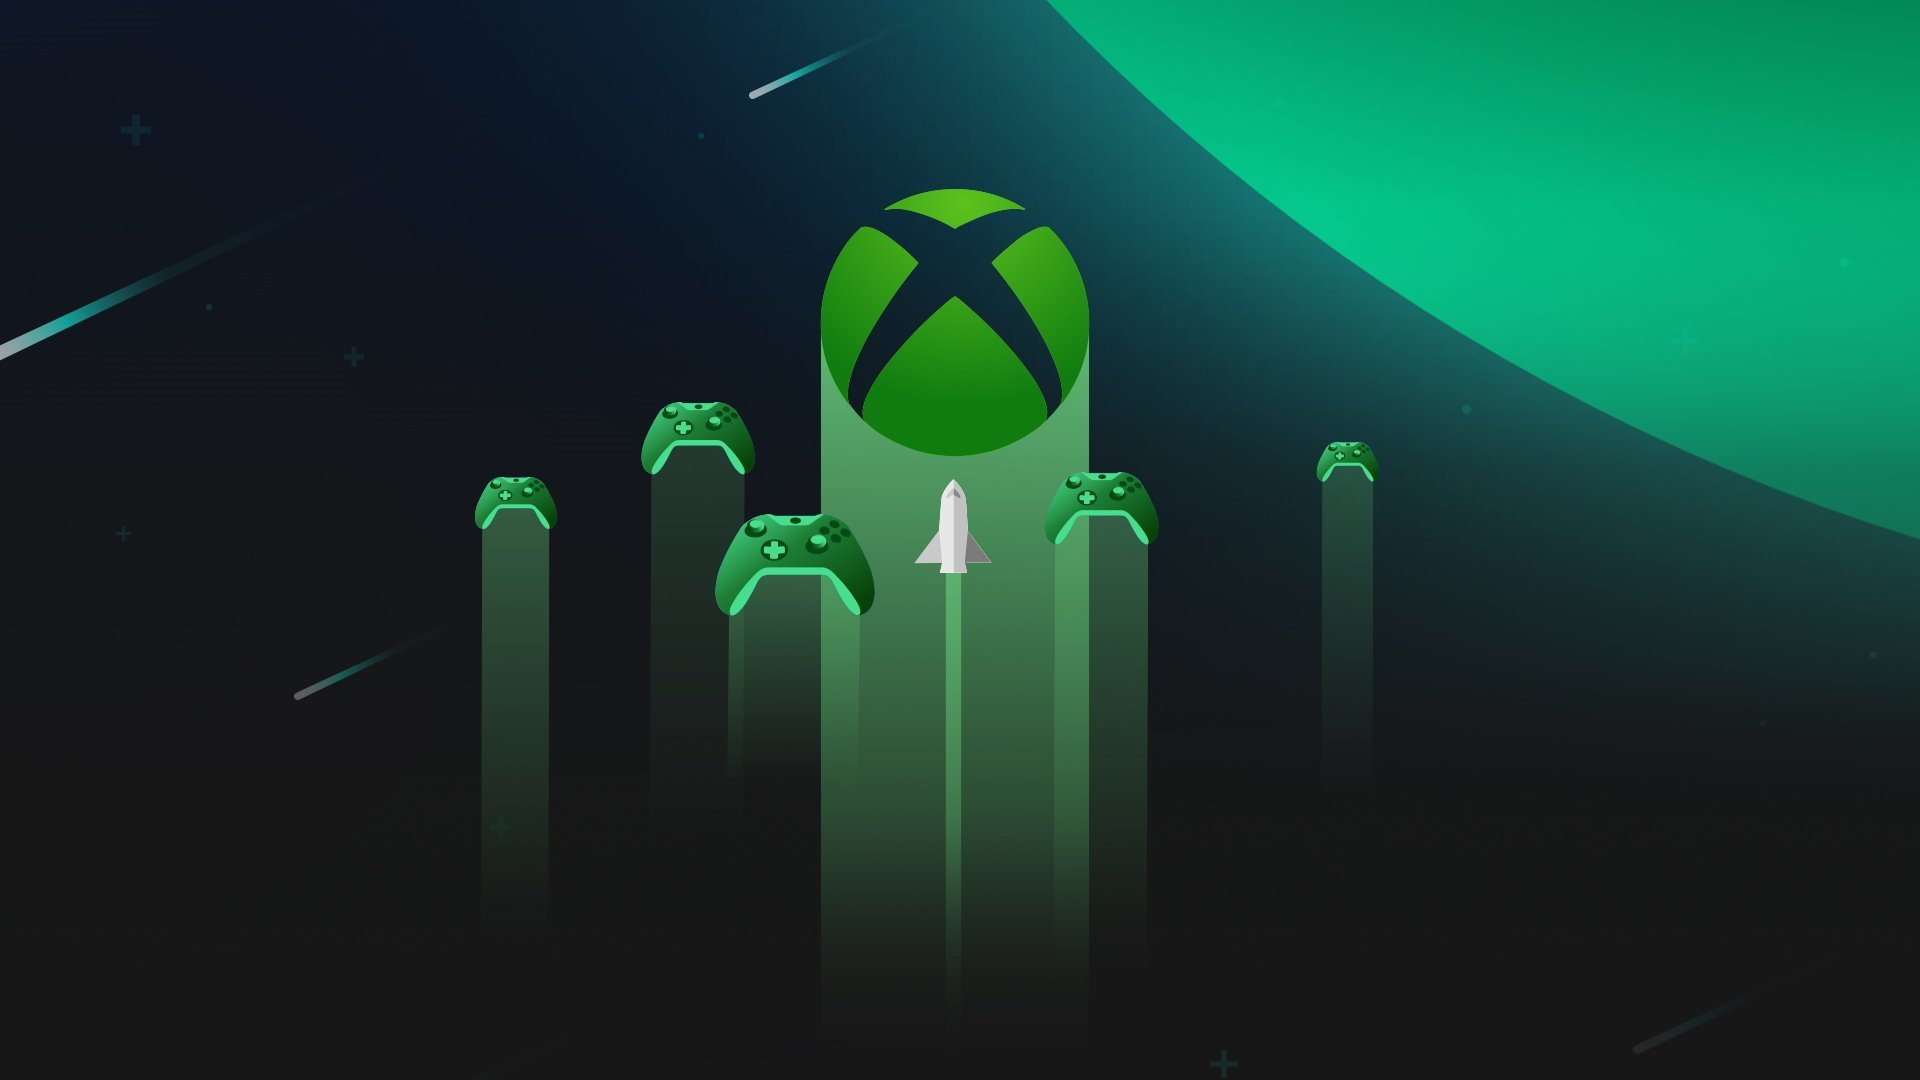 Xbox Game Streaming : les inscriptions à la beta de xCloud sont ouvertes